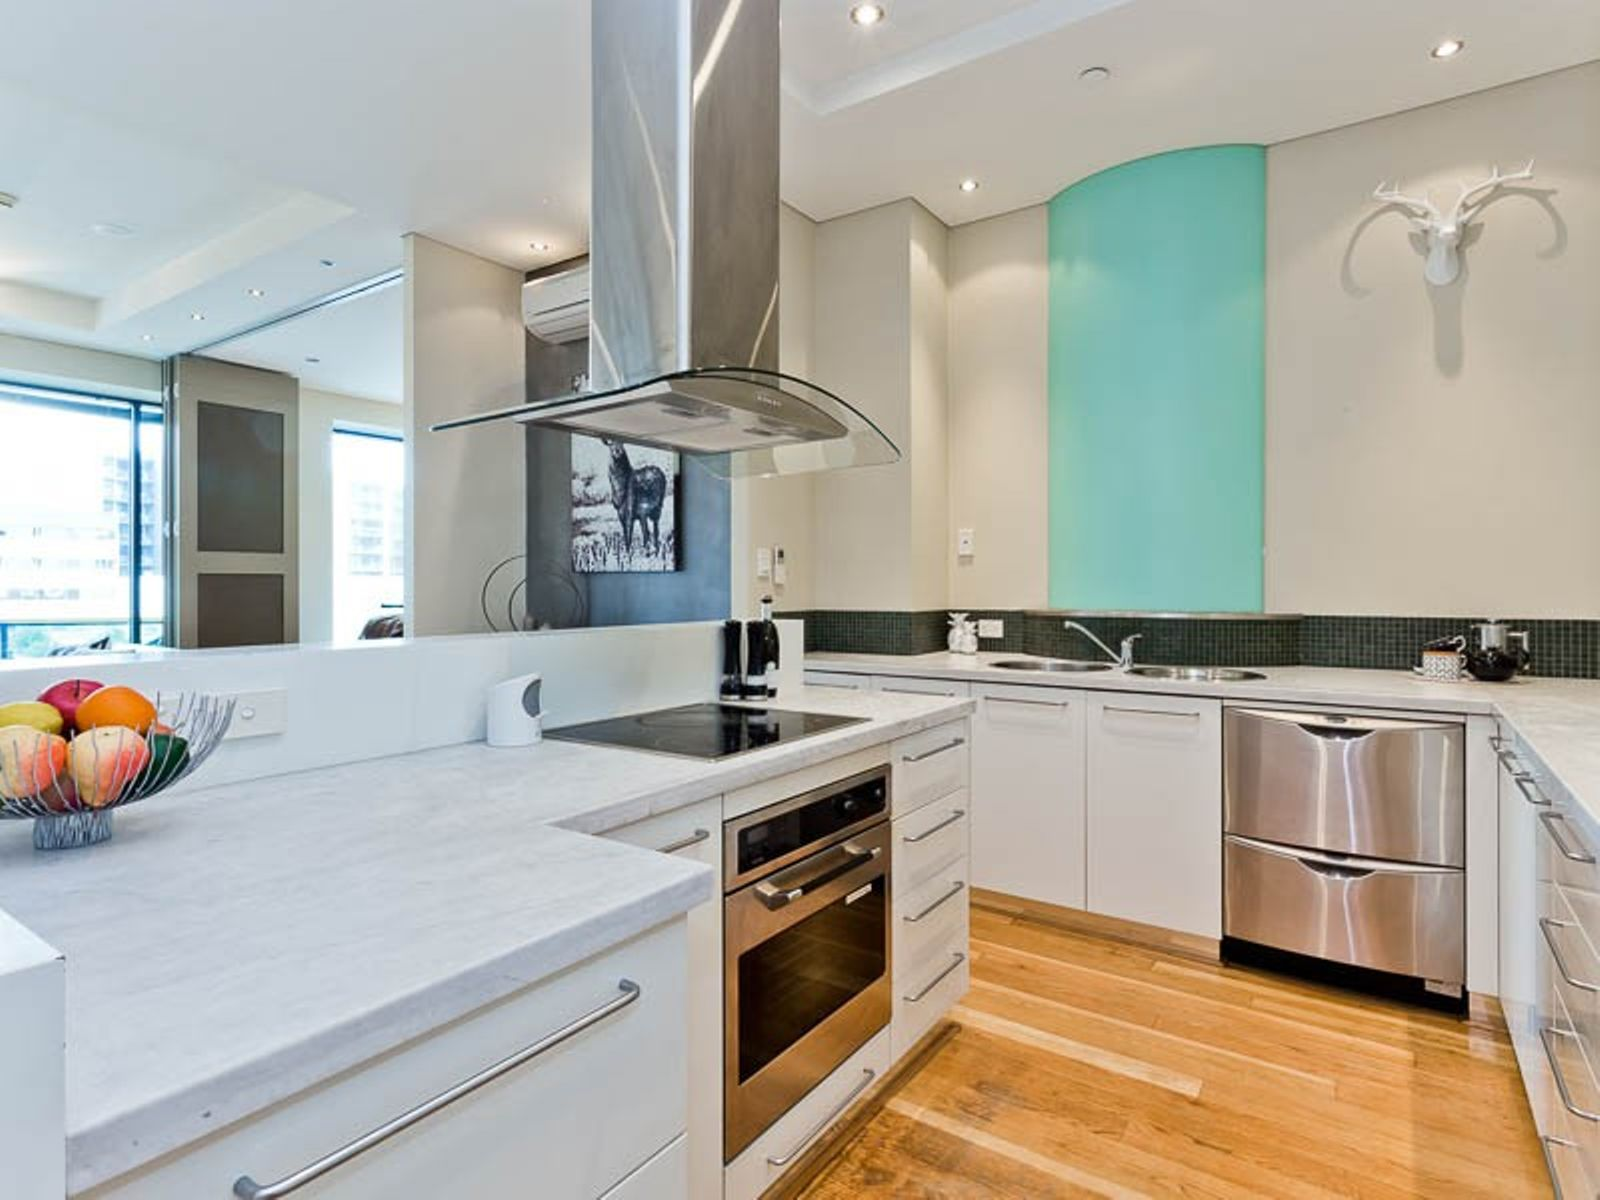 Houses for Sale Perth   28/255 Adelaide Terrace, Perth, WA 6000